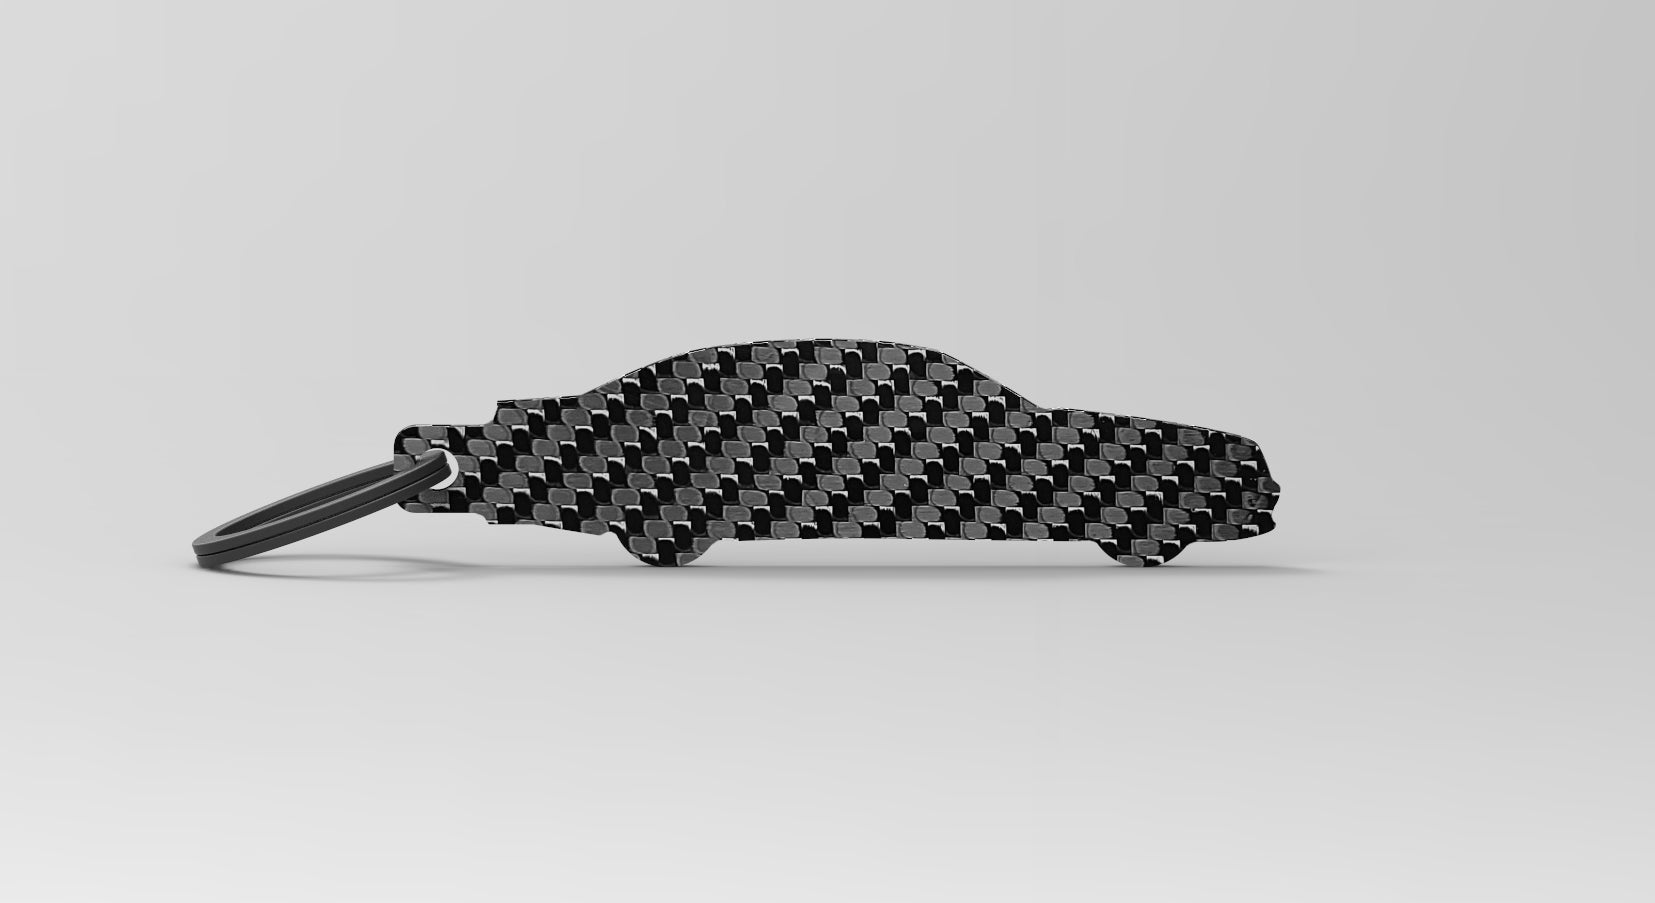 E55 AMG (W211) silhouette carbon fiber keychain